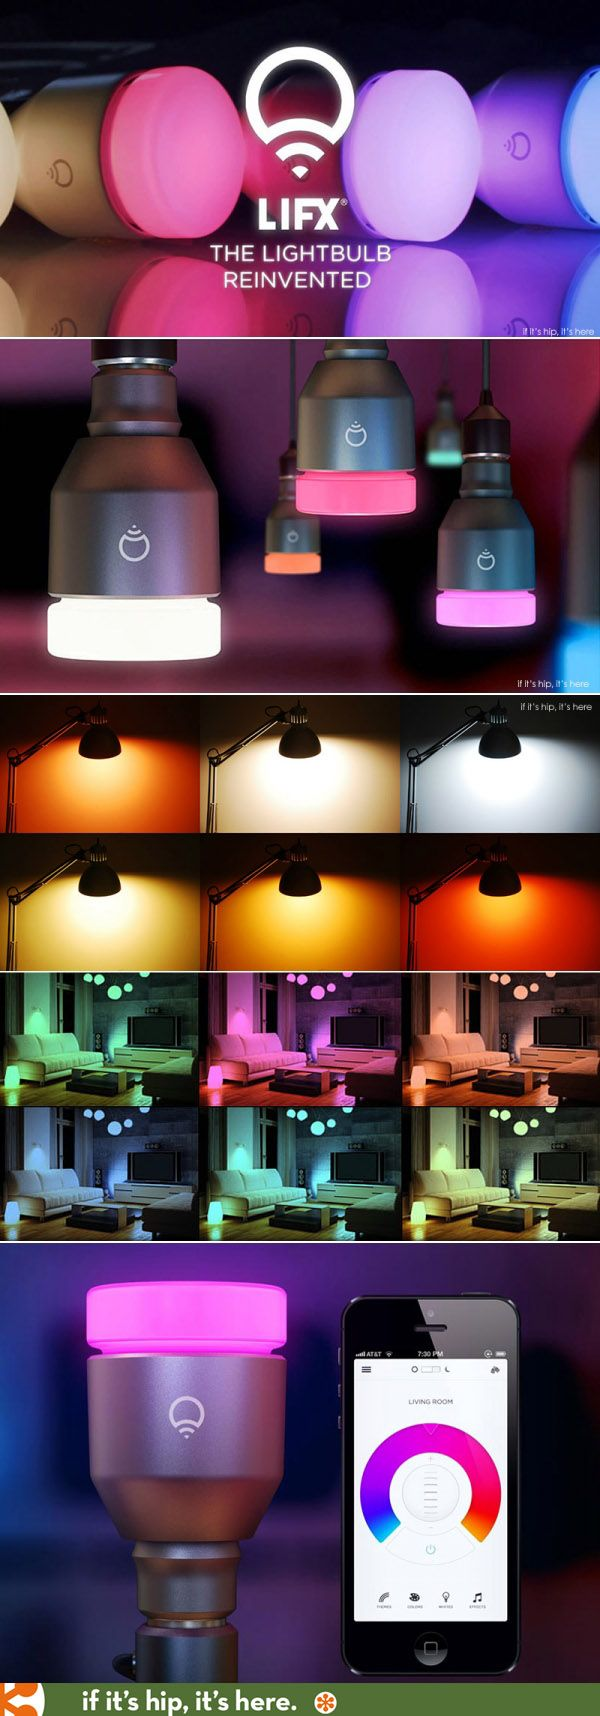 Best 25 colored light bulbs ideas on pinterest balloon lights lifx wifi enabled multi color light bulbs that use little energy and are controlled nvjuhfo Image collections